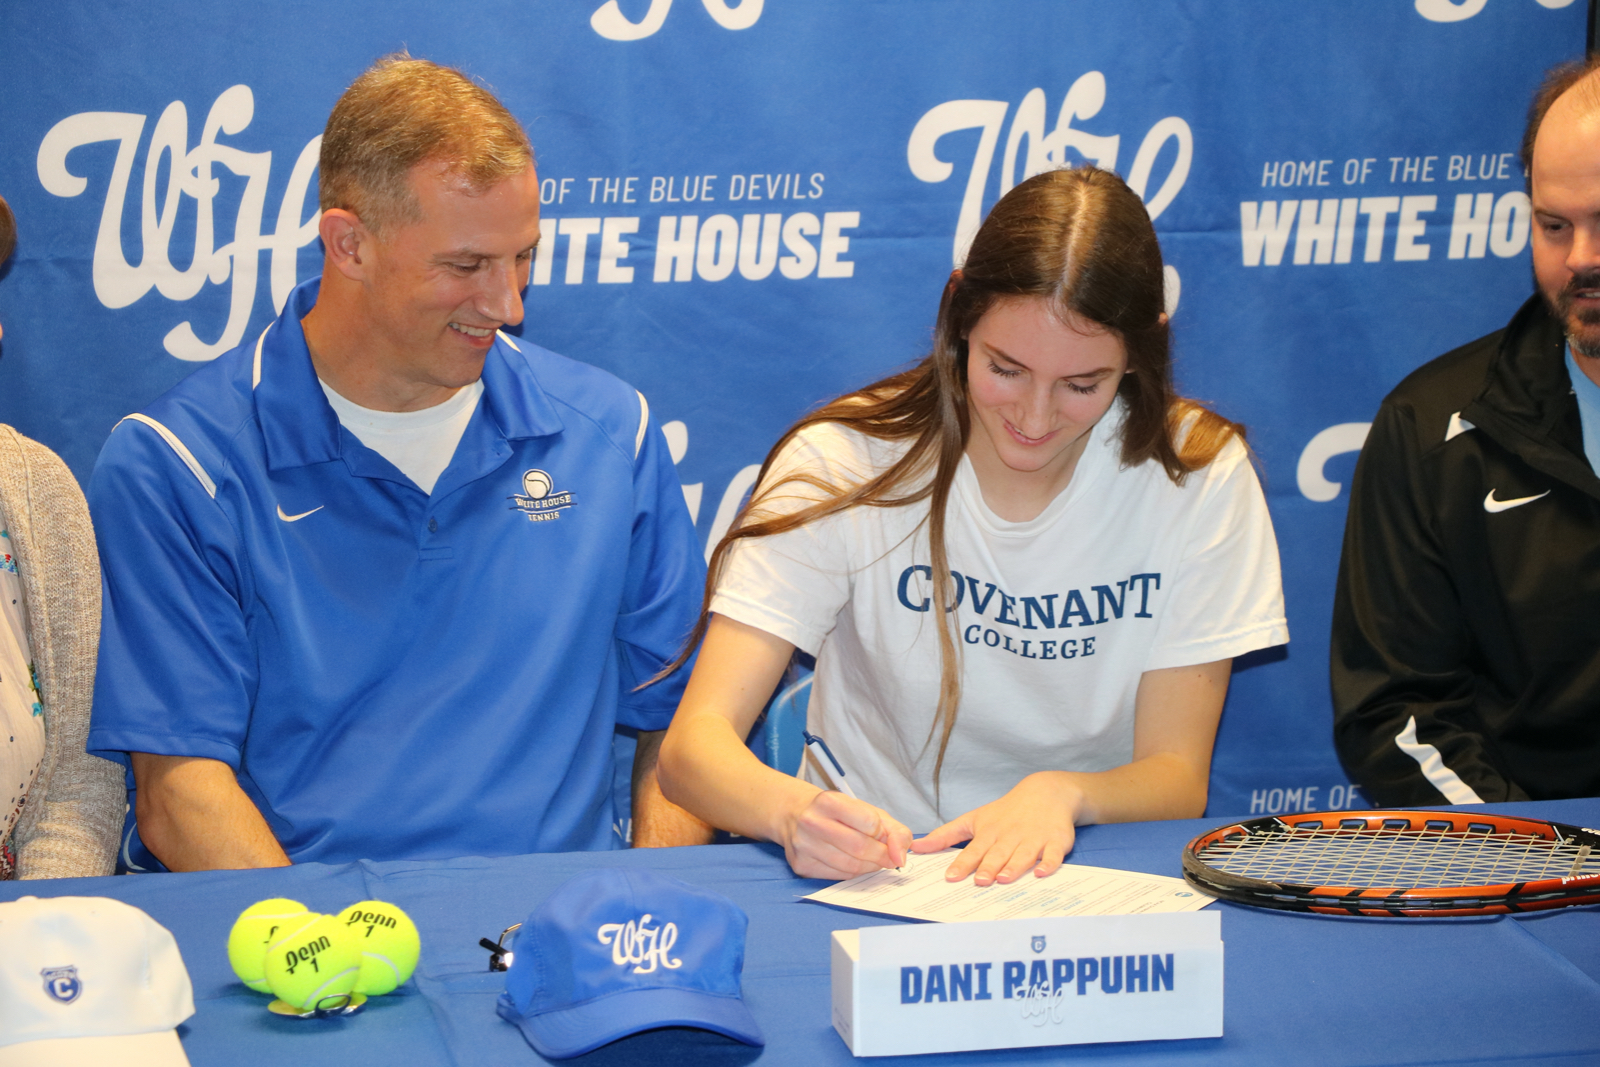 Tennis Photos: Rappuhn signs with Covenant College